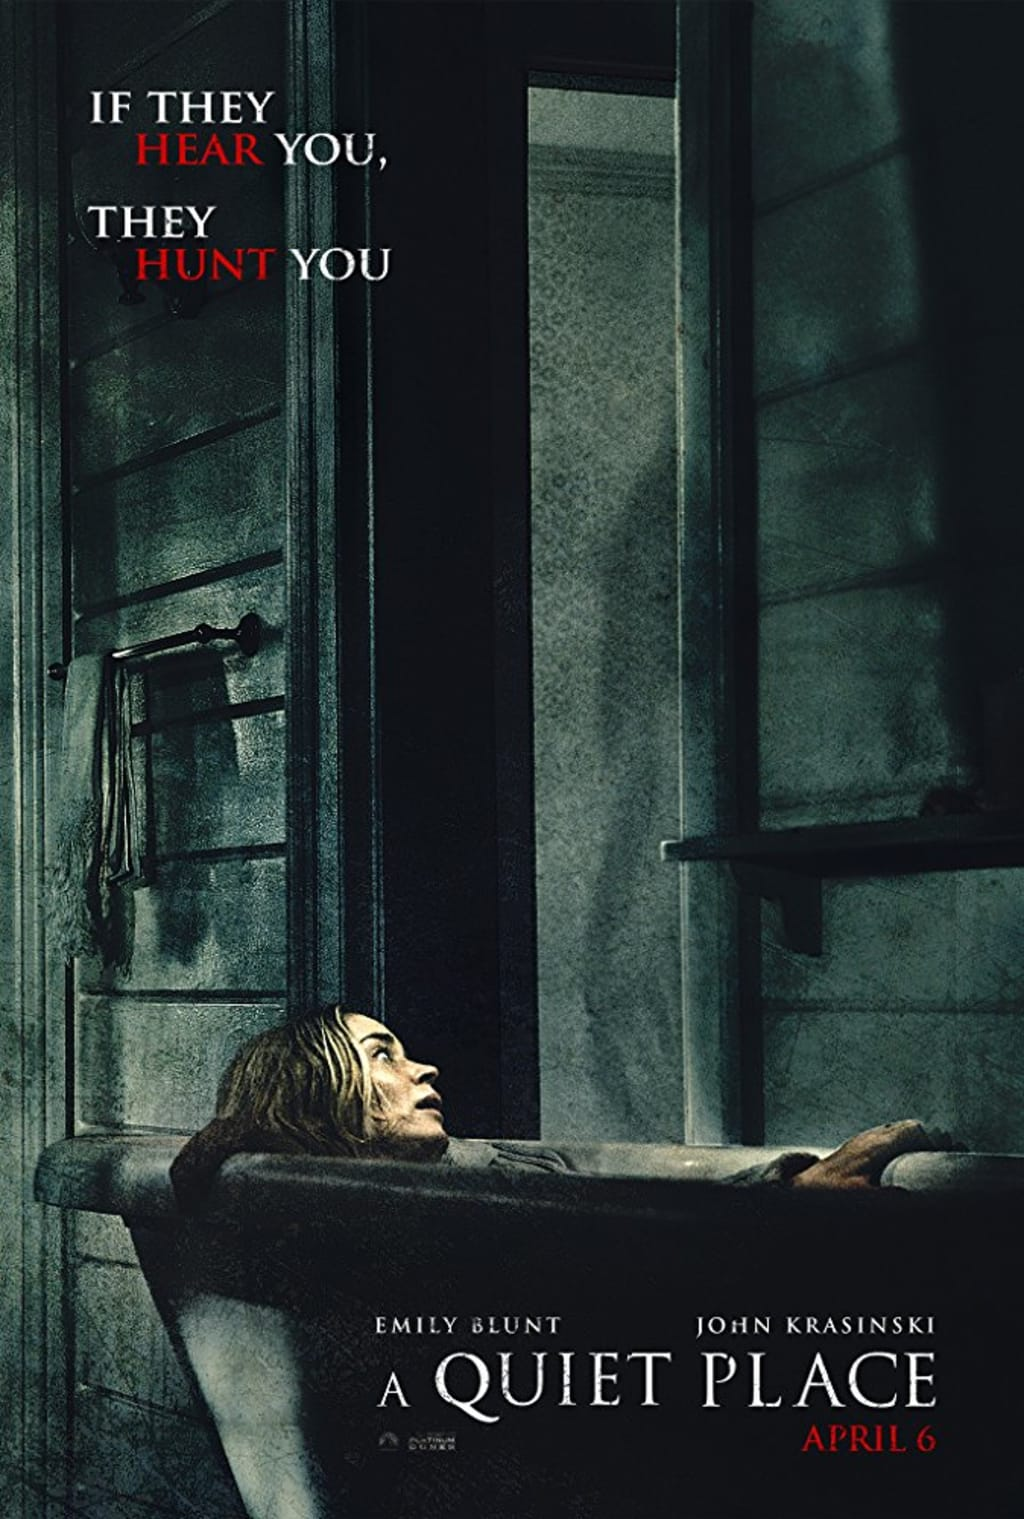 Reed Alexander's Horror Review of 'A Quiet Place' (2018)